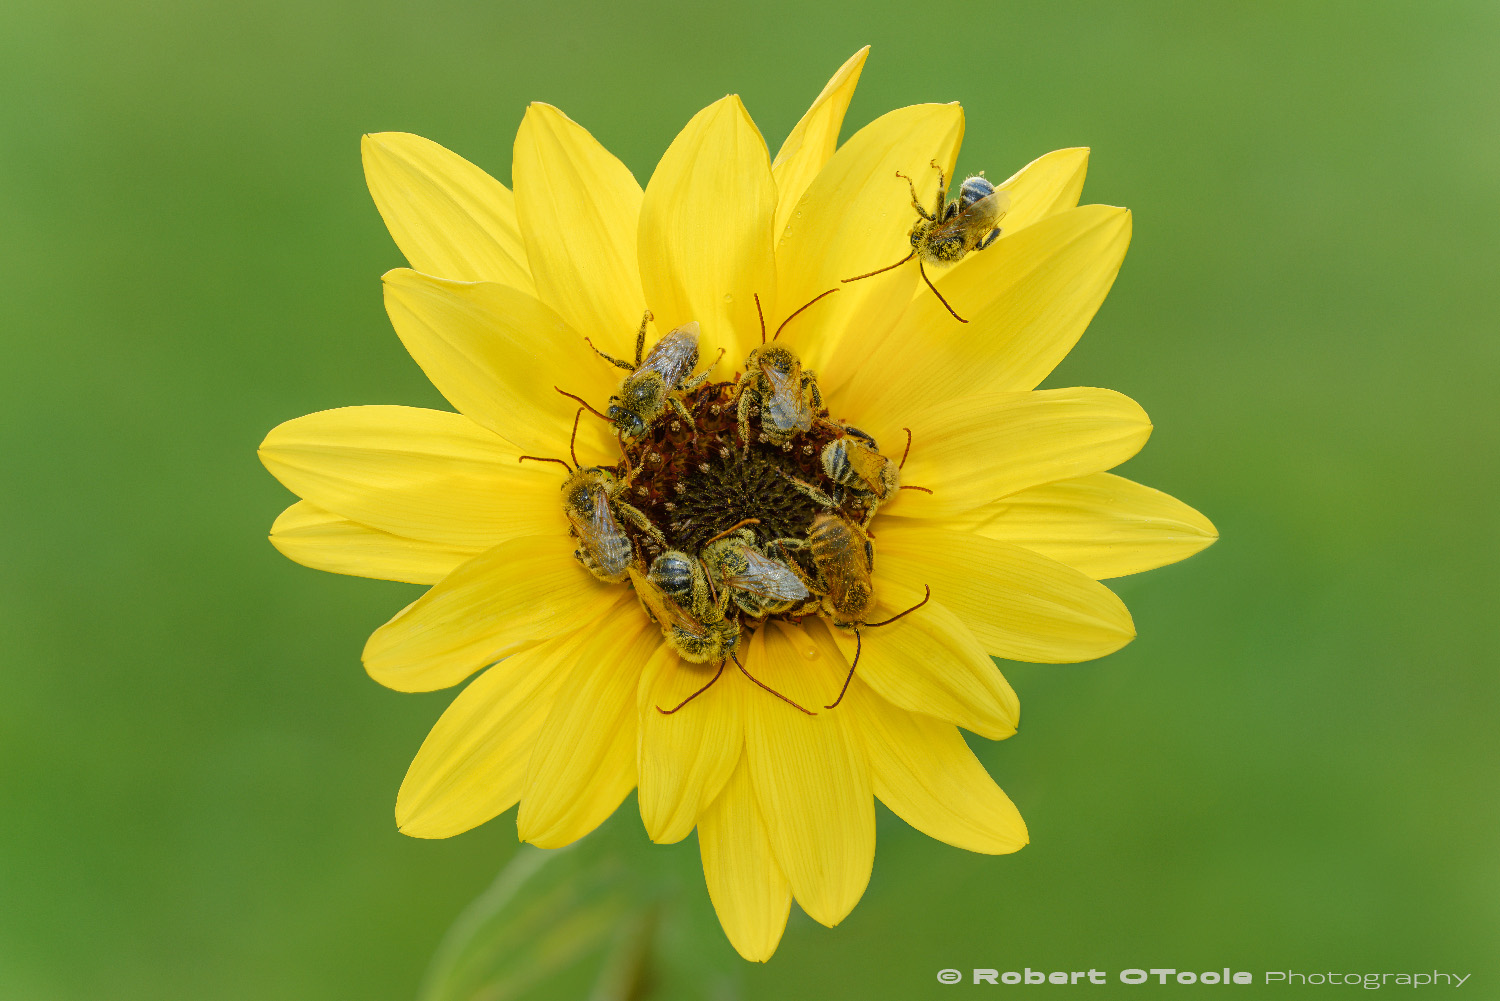 Male long horned bees, Melissodes sp., sleeping together in a sunflower at Madrona Marsh, Torrance California. This final image is made up of 3 images stacked.  Sigma 150mm Macro lens Nikon D810 Single SB-R200 flash with diffuser 1/30s f/8 ISO 100 Acratech Ballhead and carbon fiber tripod.